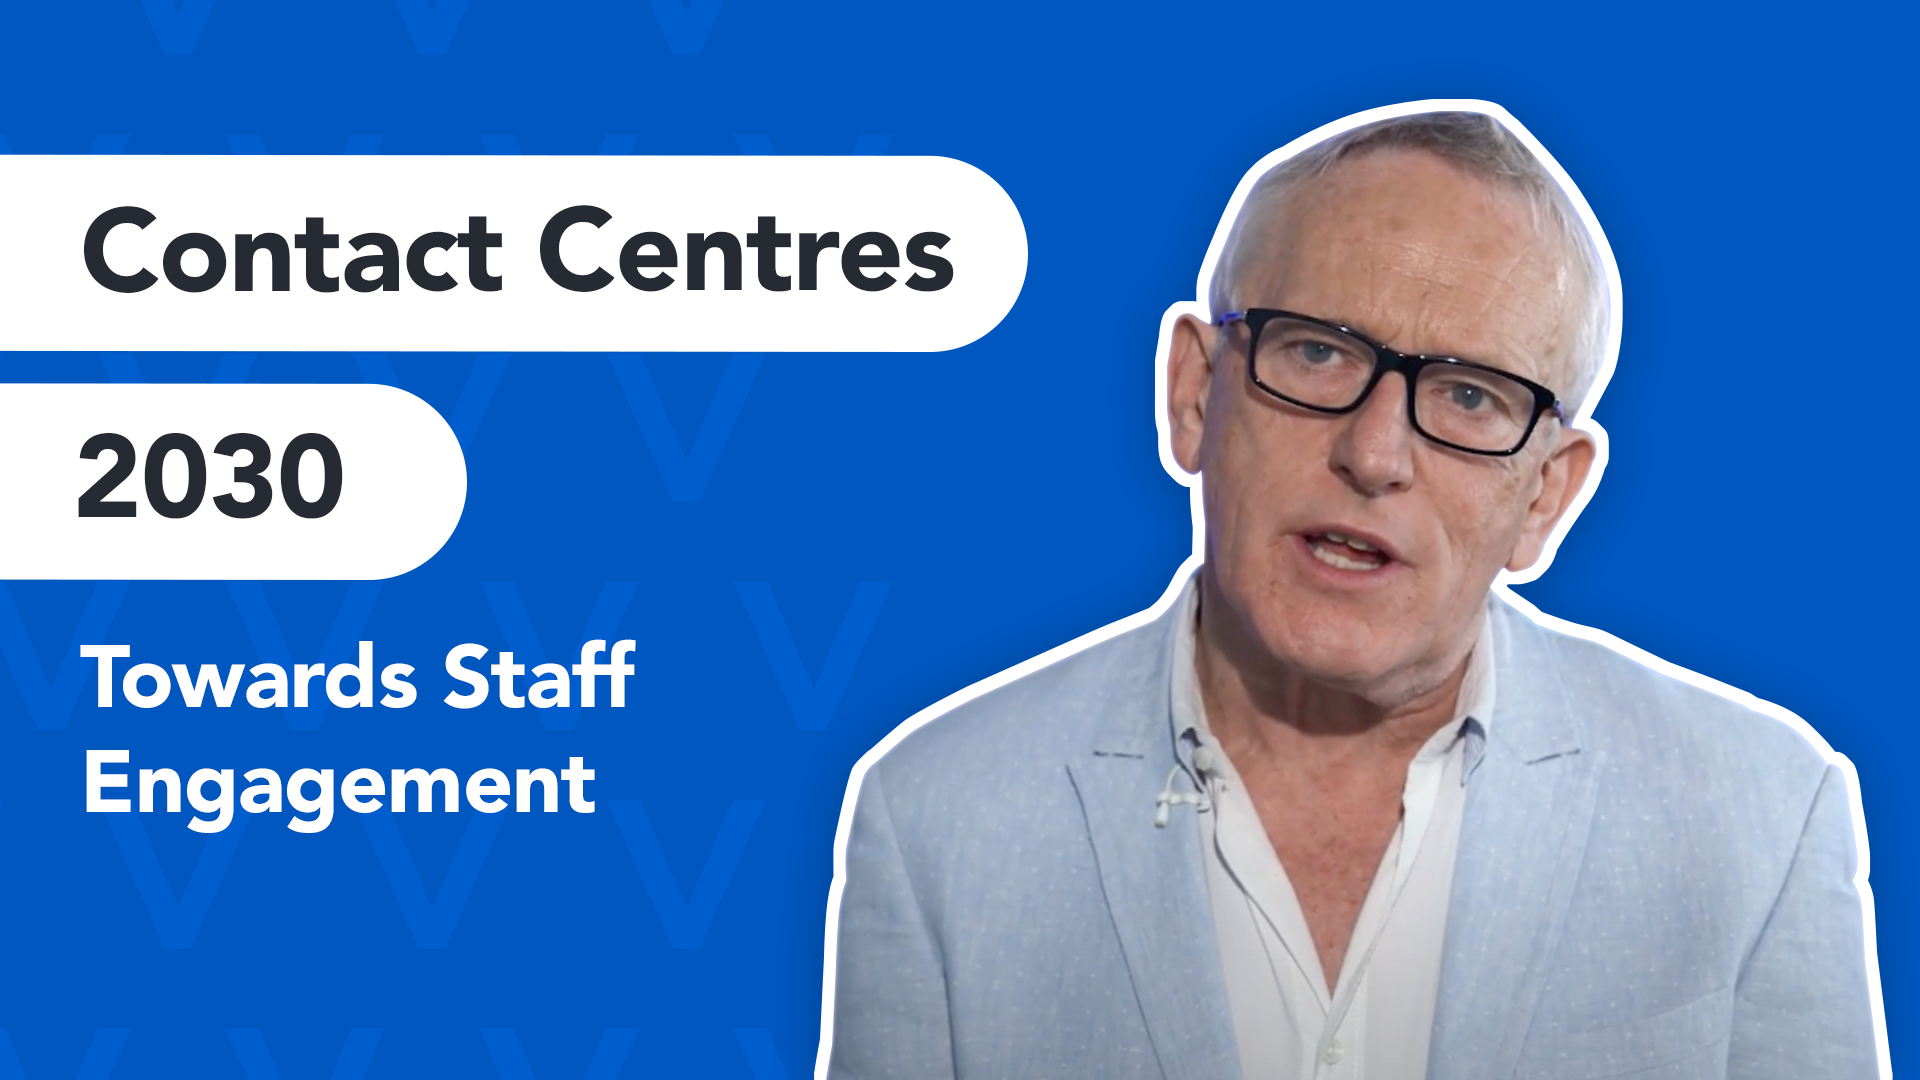 James Woudhuysen on Contact Centres 2030: Toward Staff Engagement